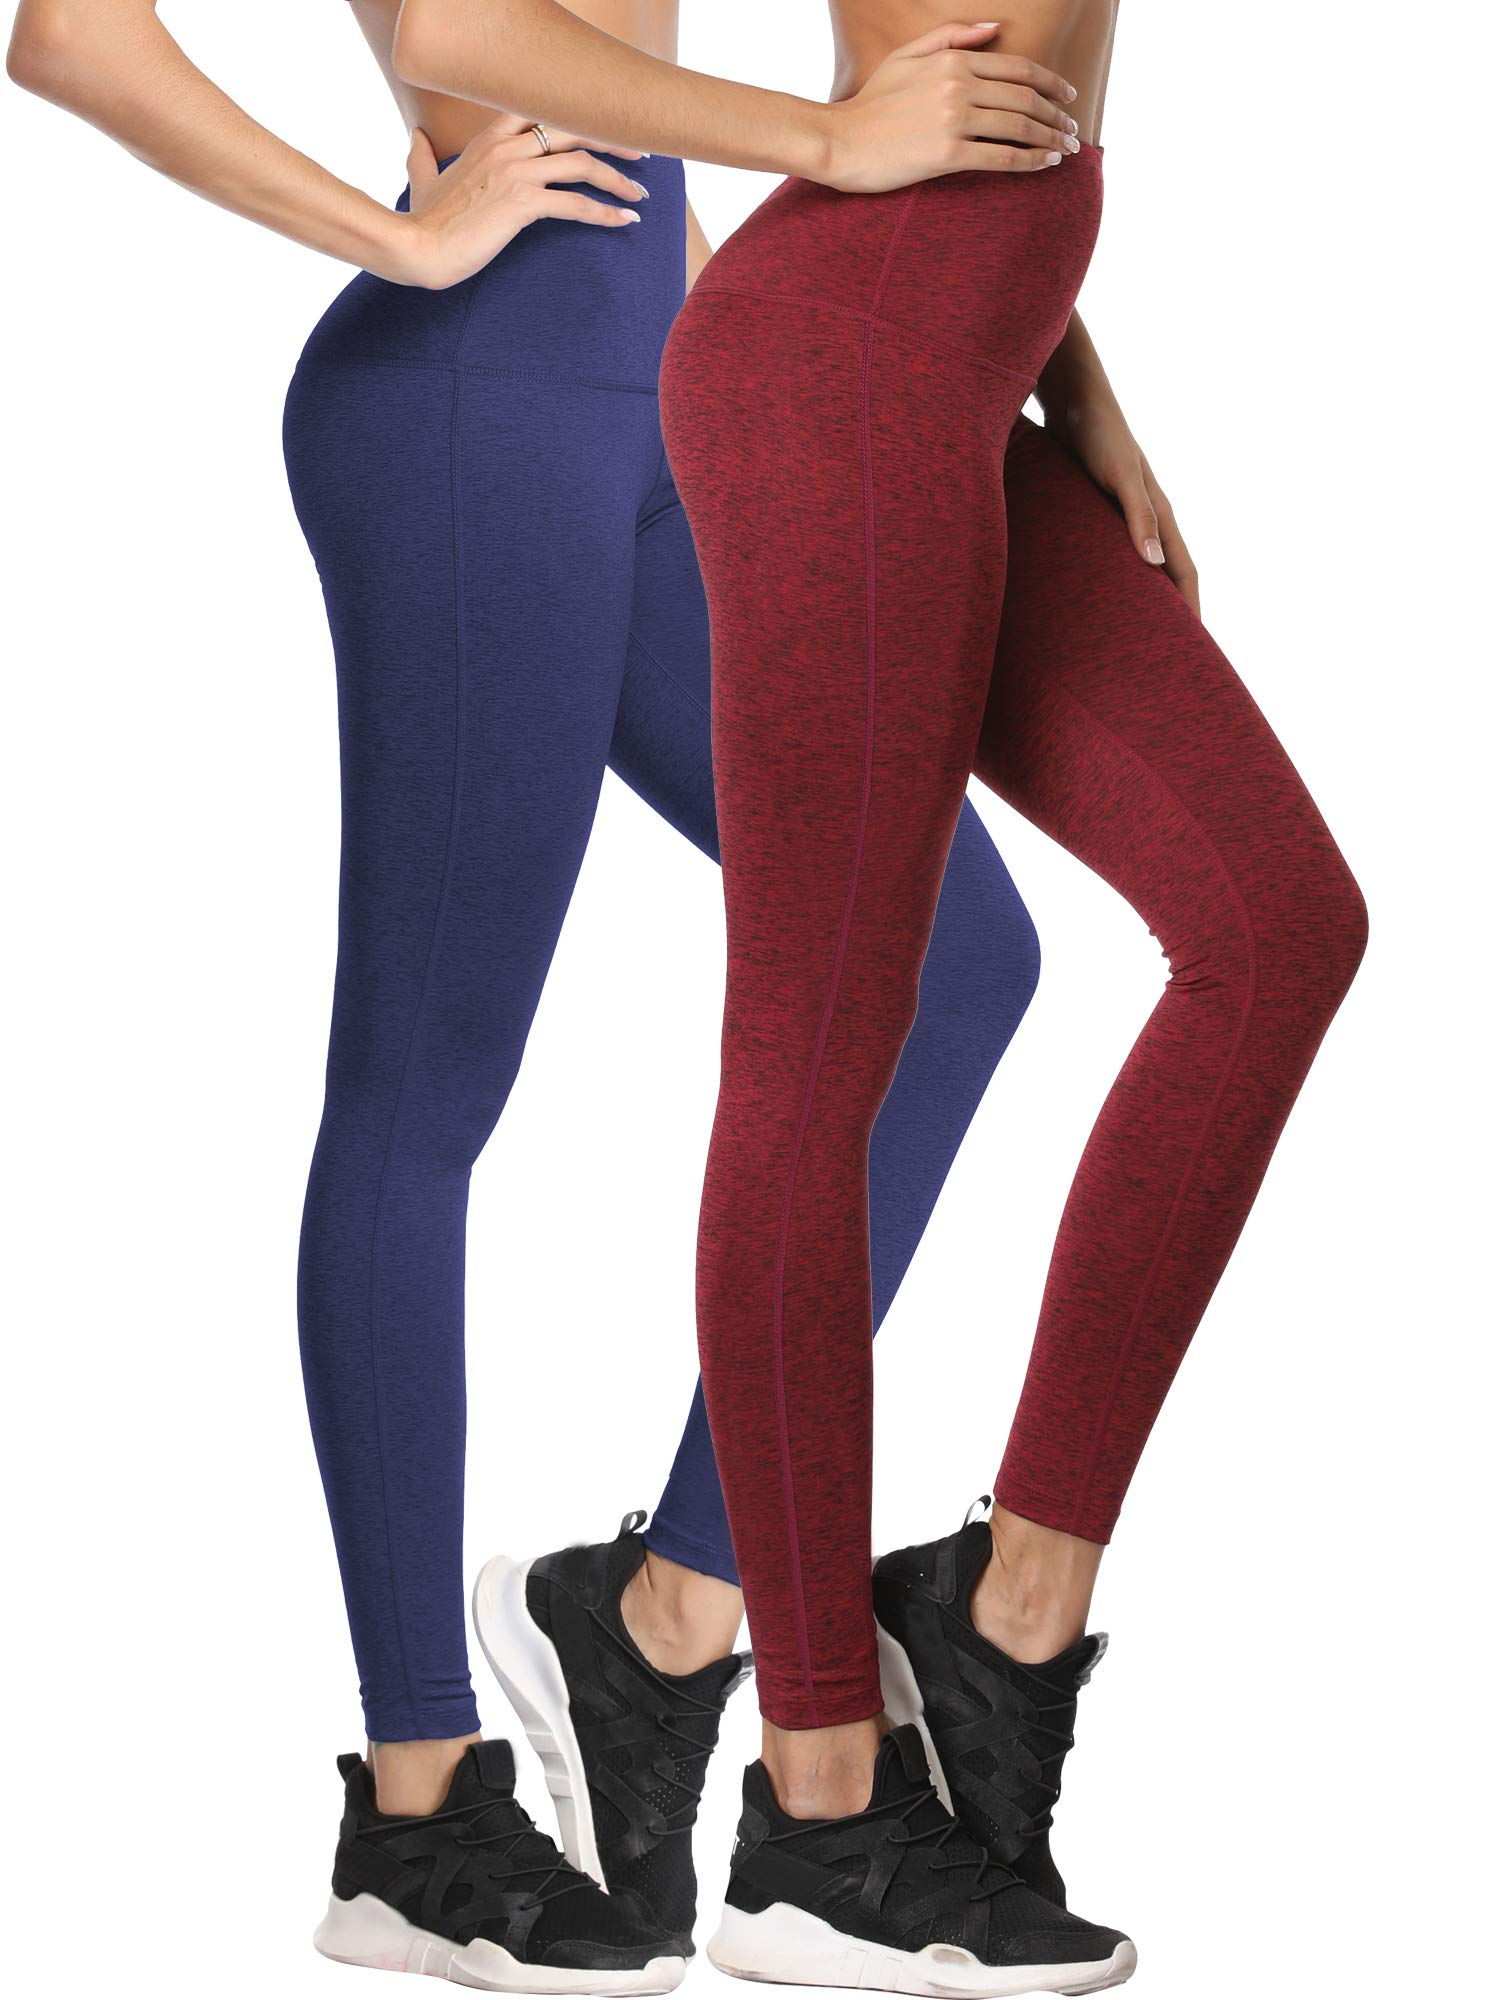 Cadmus Tummy Control Workout Leggings for Yoga Womens,1101,Navy Blue & Wine Red,Small